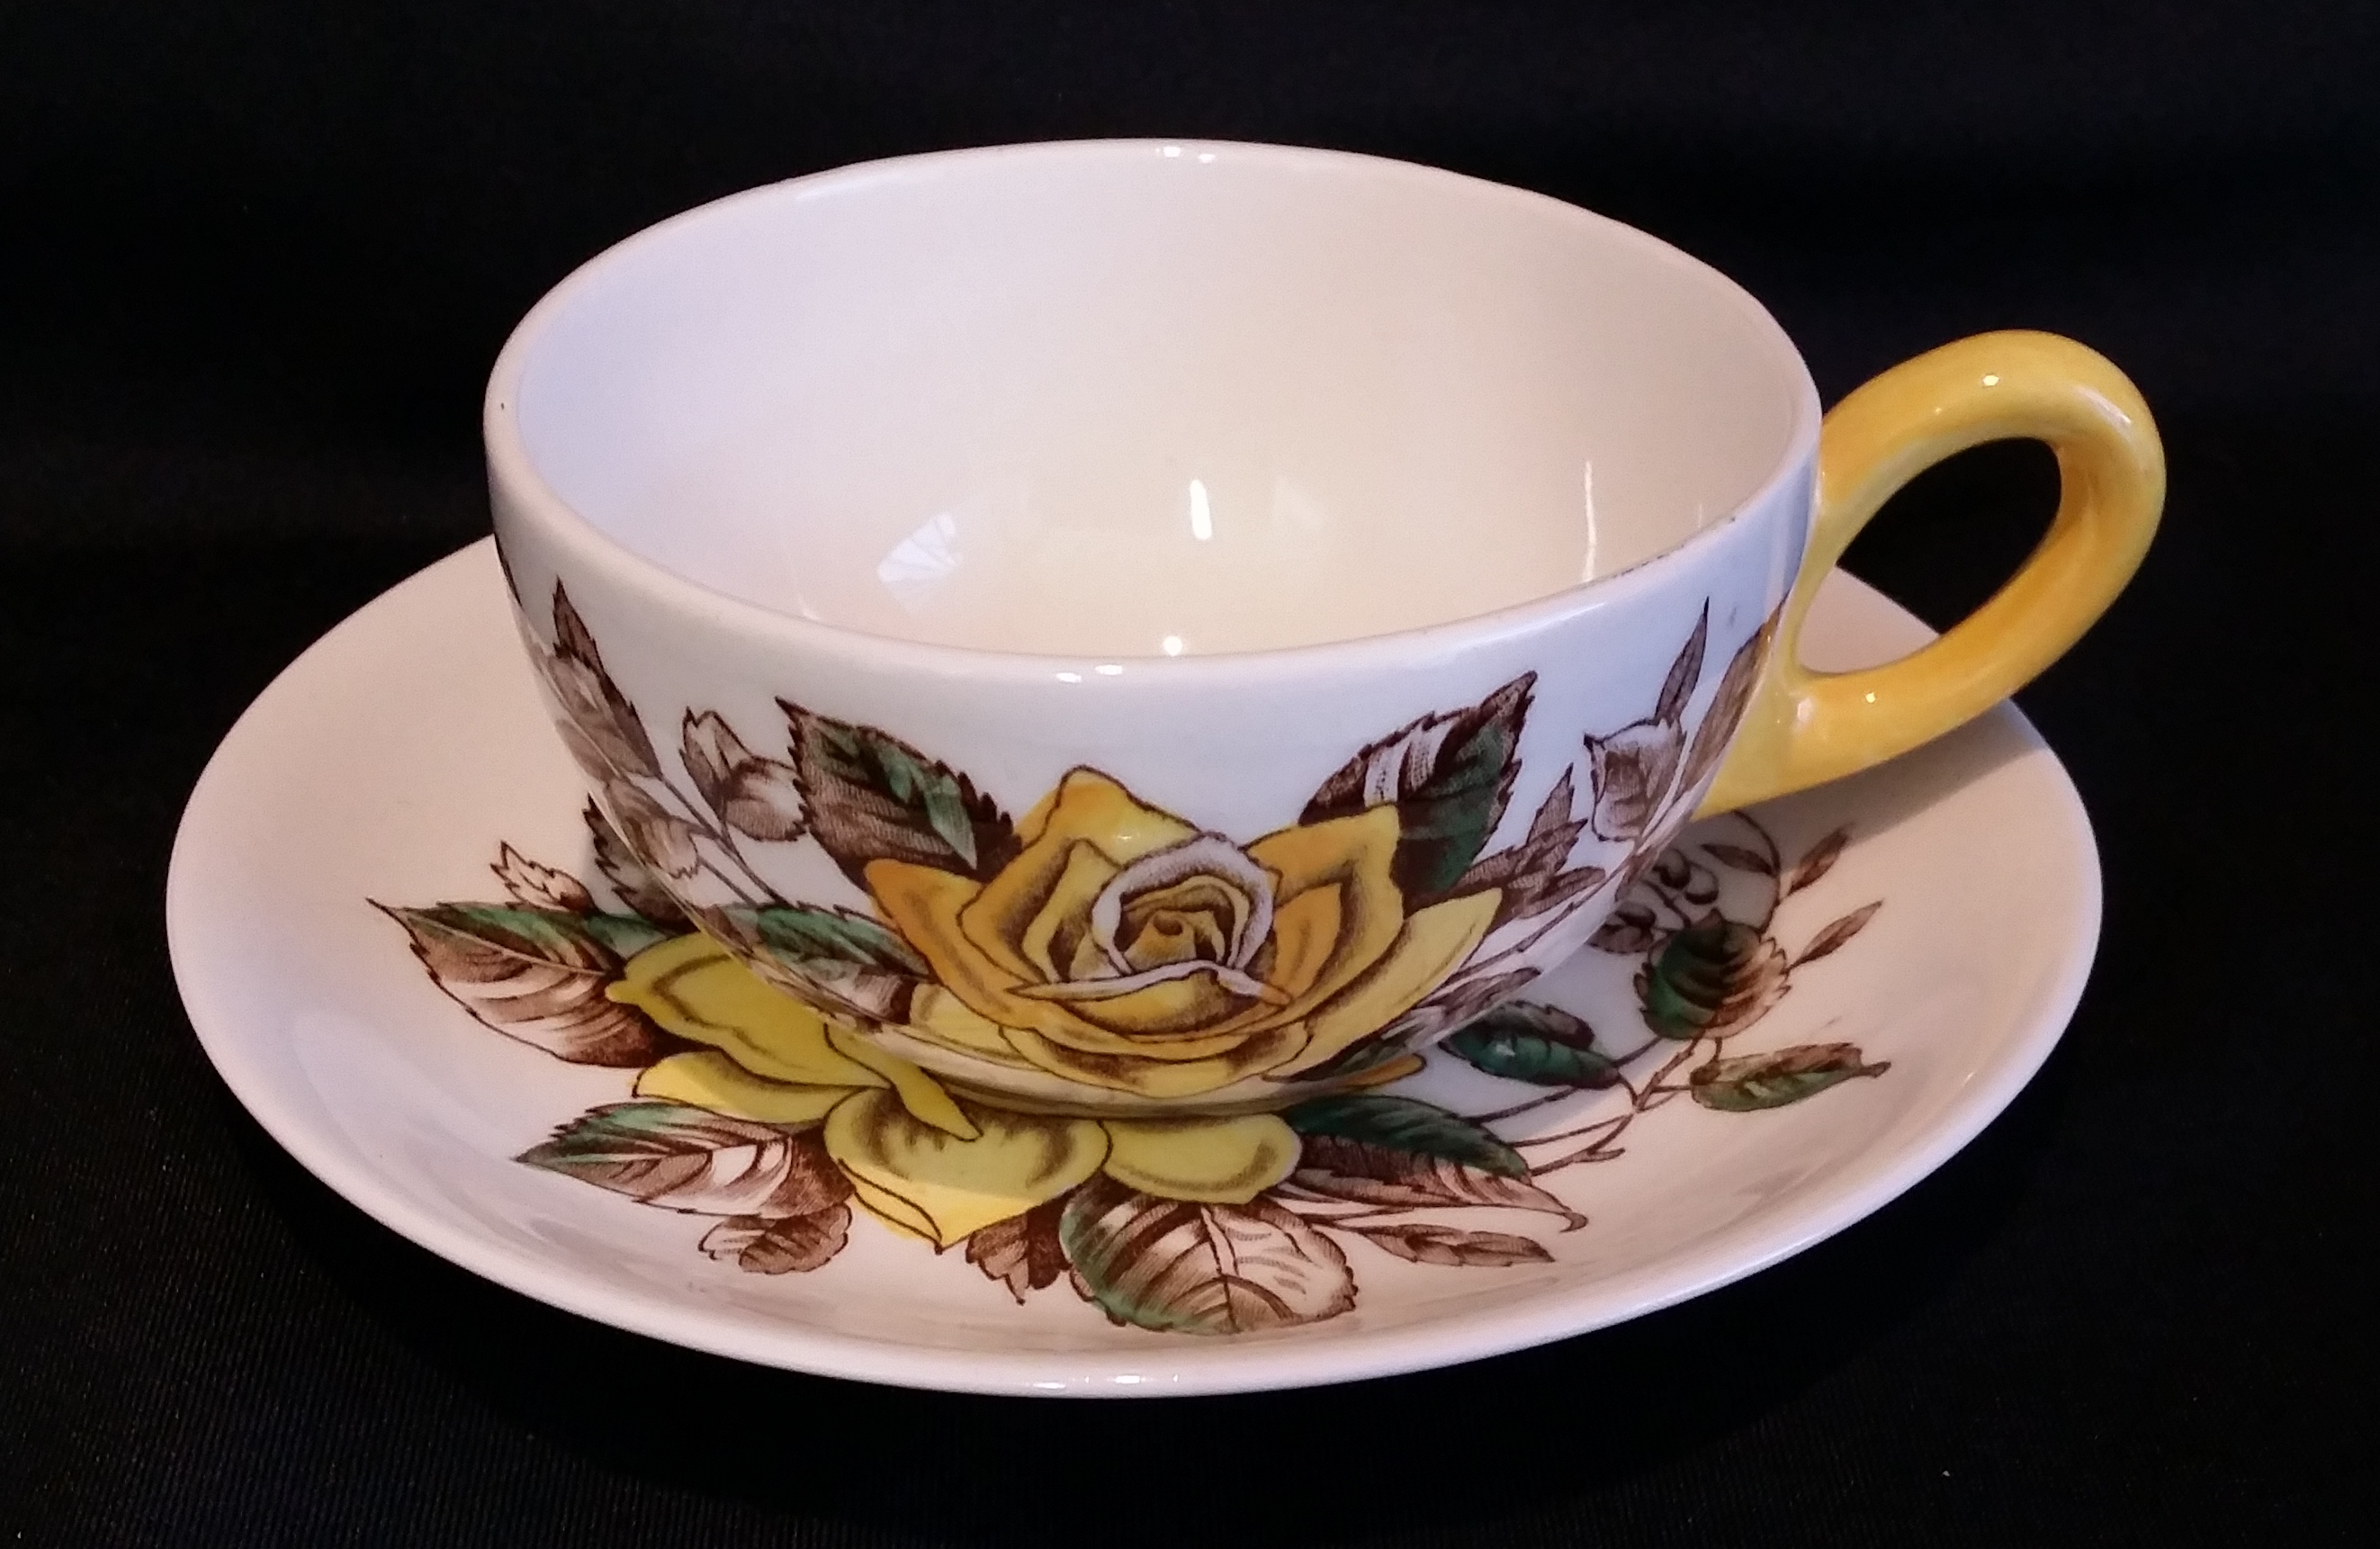 The Duke Cup & Saucer